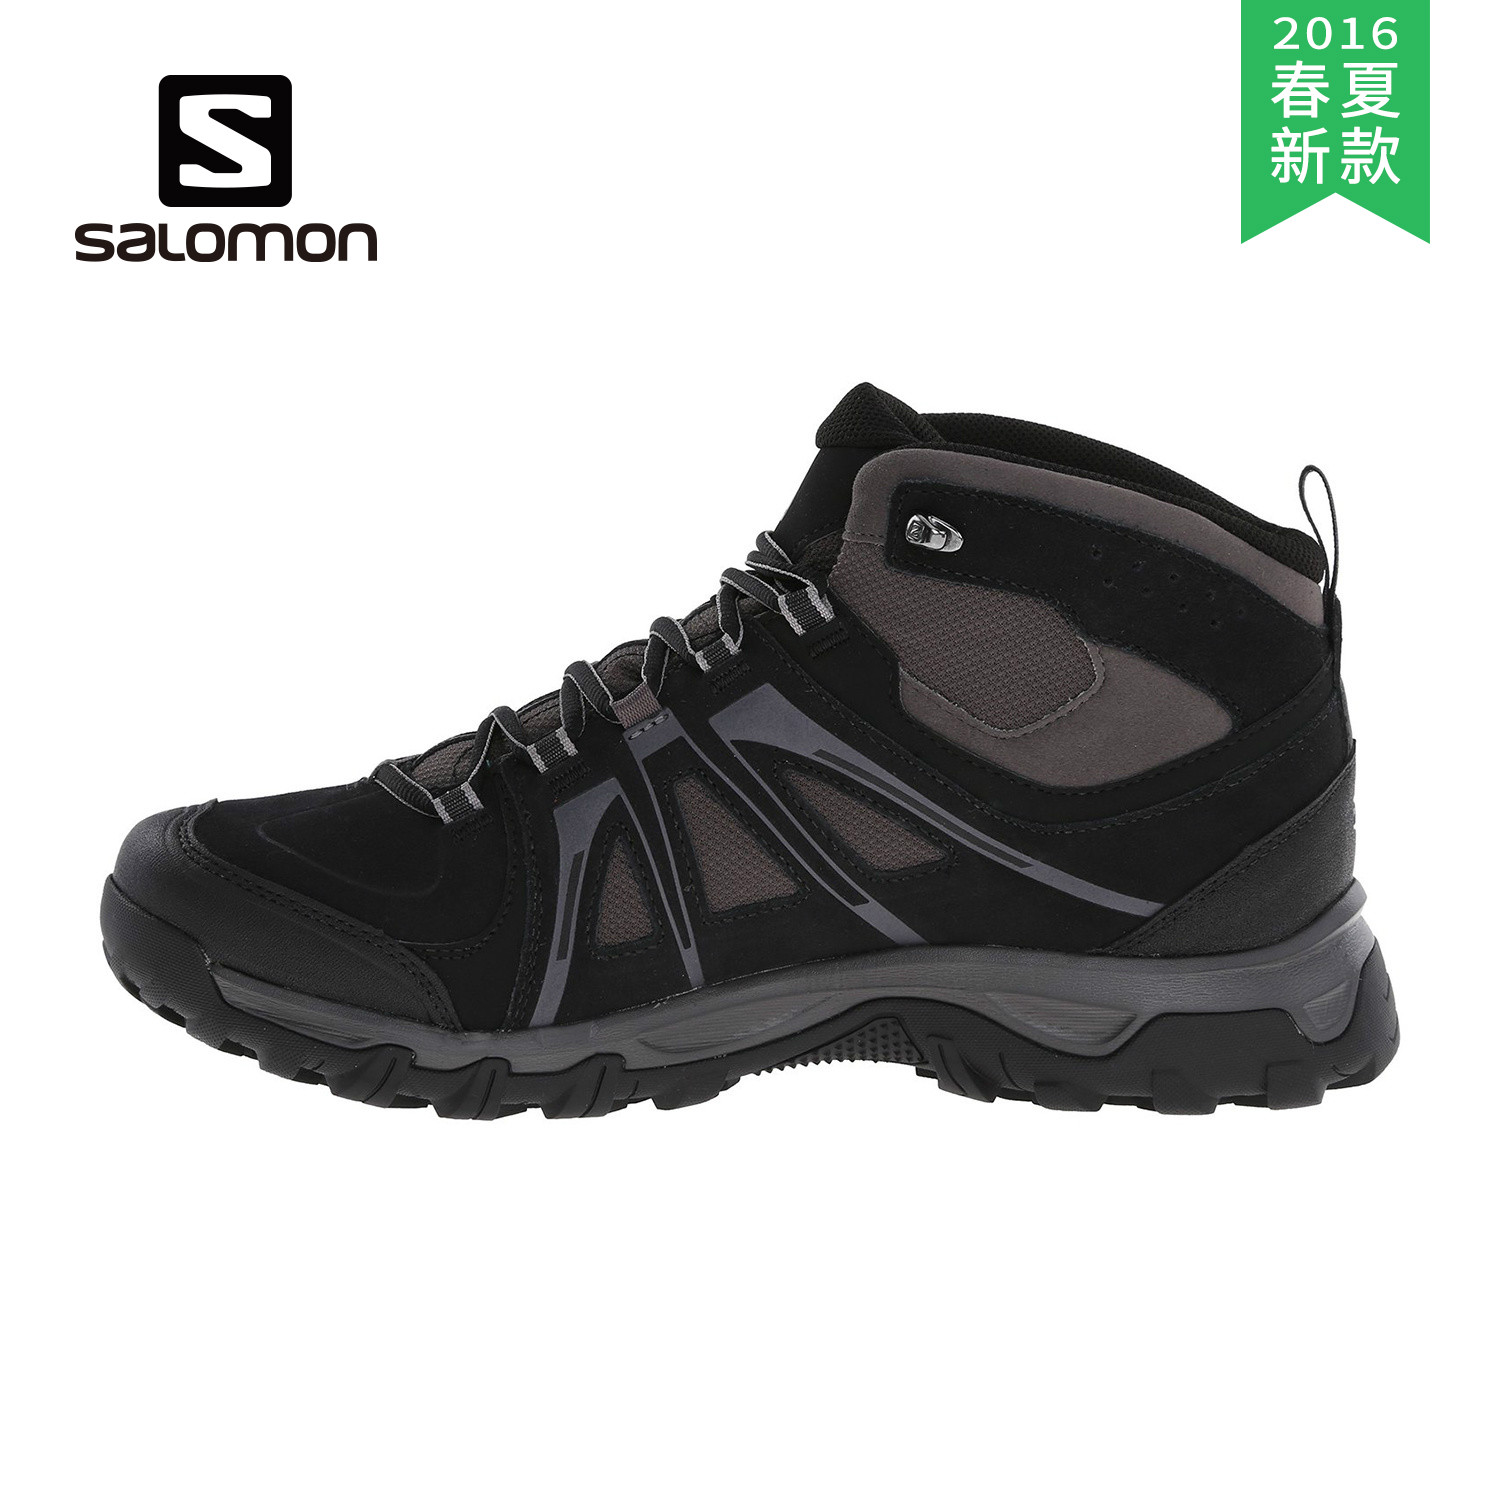 [2016] spring and summer salomon/salomon mens gtx hiking shoes to help 376909